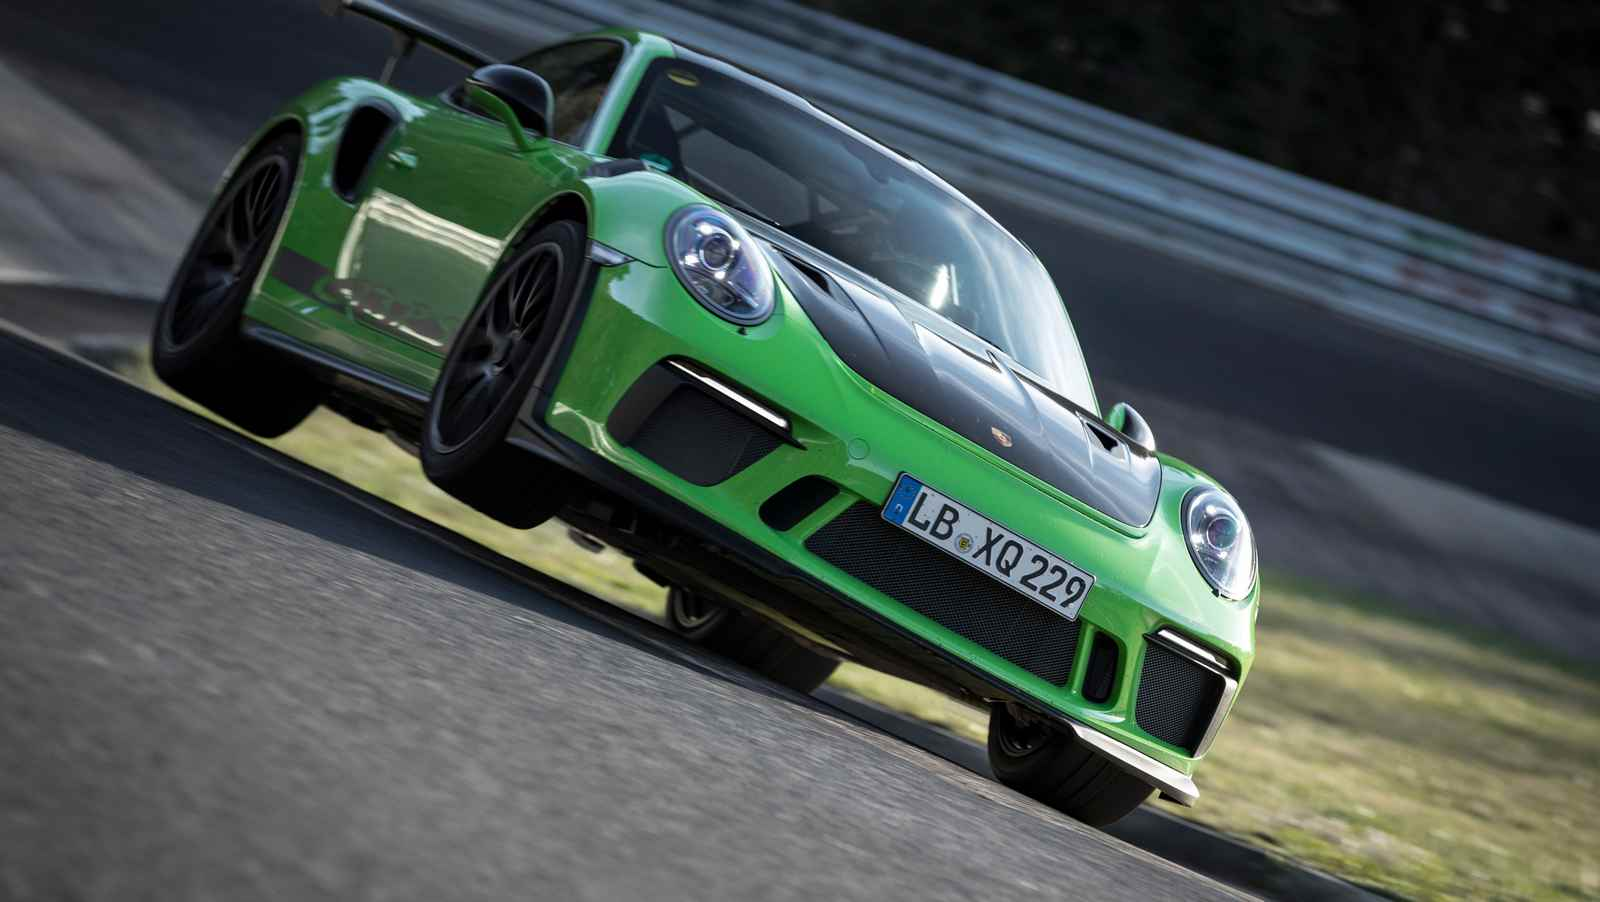 Porsche GT3 RS | Nuovo record al Nurburgring. L'onboard video